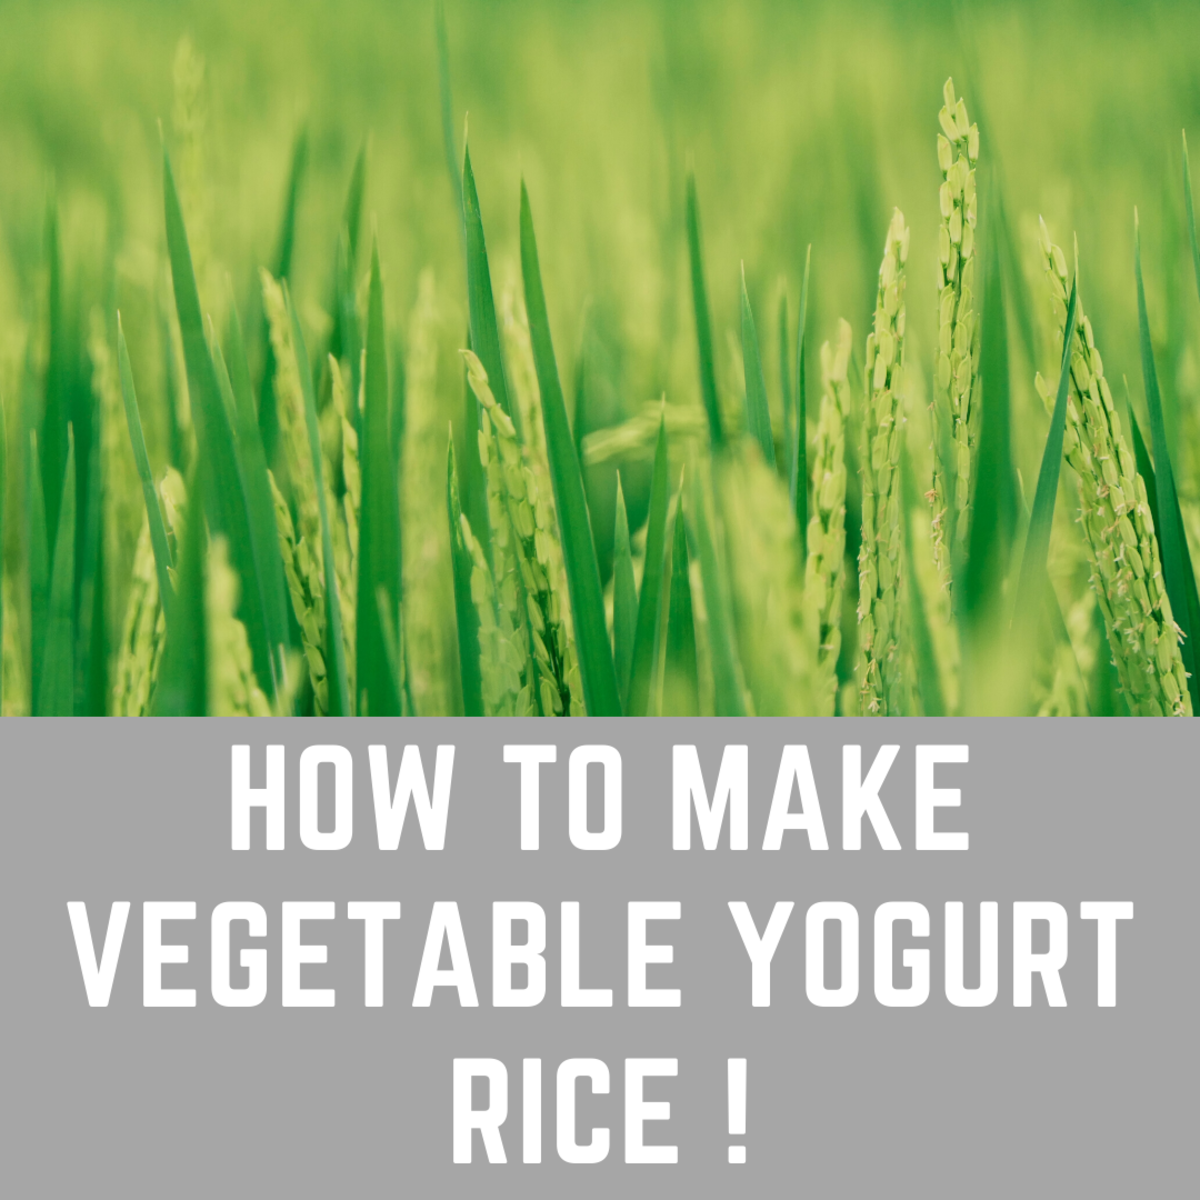 How to Make Vegetable Yogurt Rice (Vegetable Tahari)